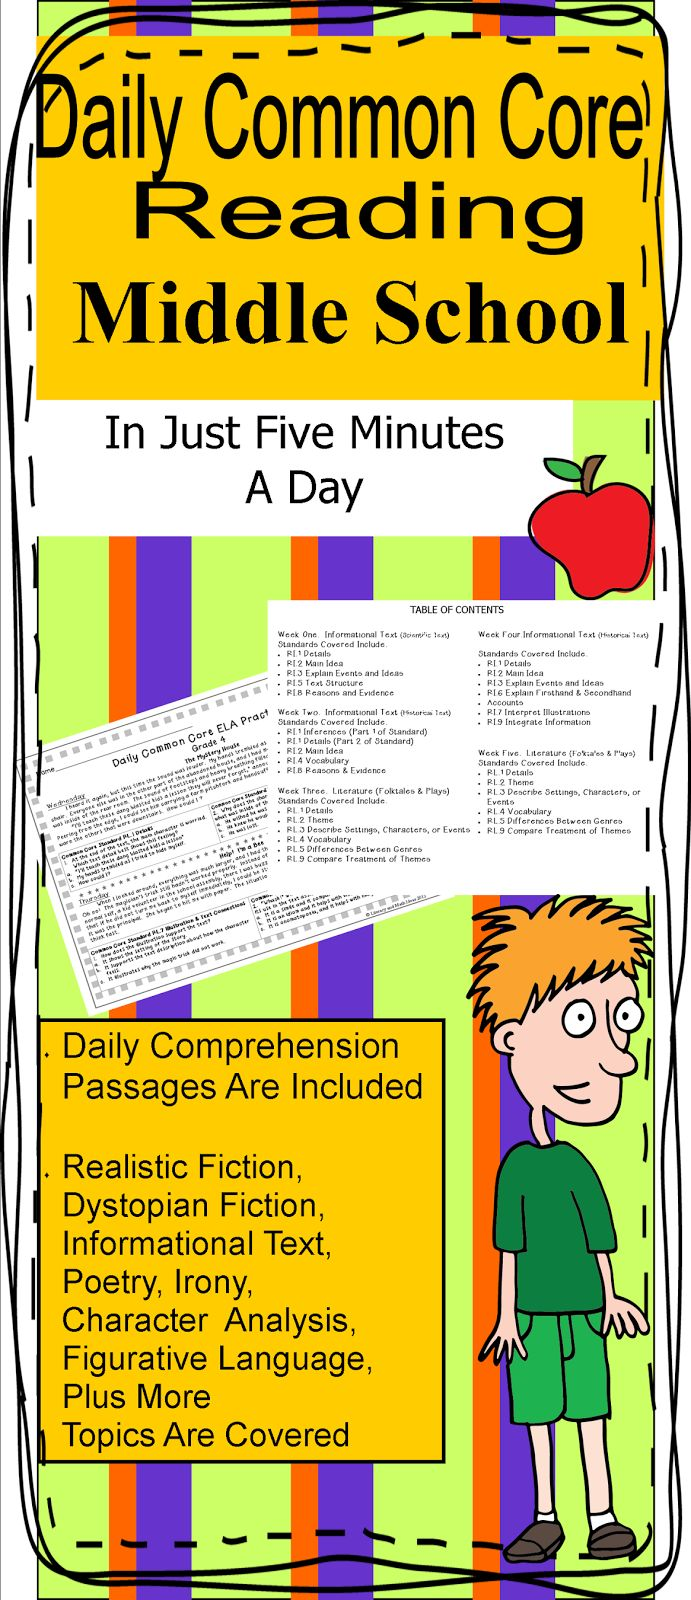 25 different, quick daily passages per bundle--Middle School Daily Common Core Practice in Five Minutes a Day~ (Quick, Short Passages Are Included) Informational Text, Literature, Realistic Fiction, Dystopian Fiction, And More! Inference, main idea, summarizing, figurative language, and point of view questions $